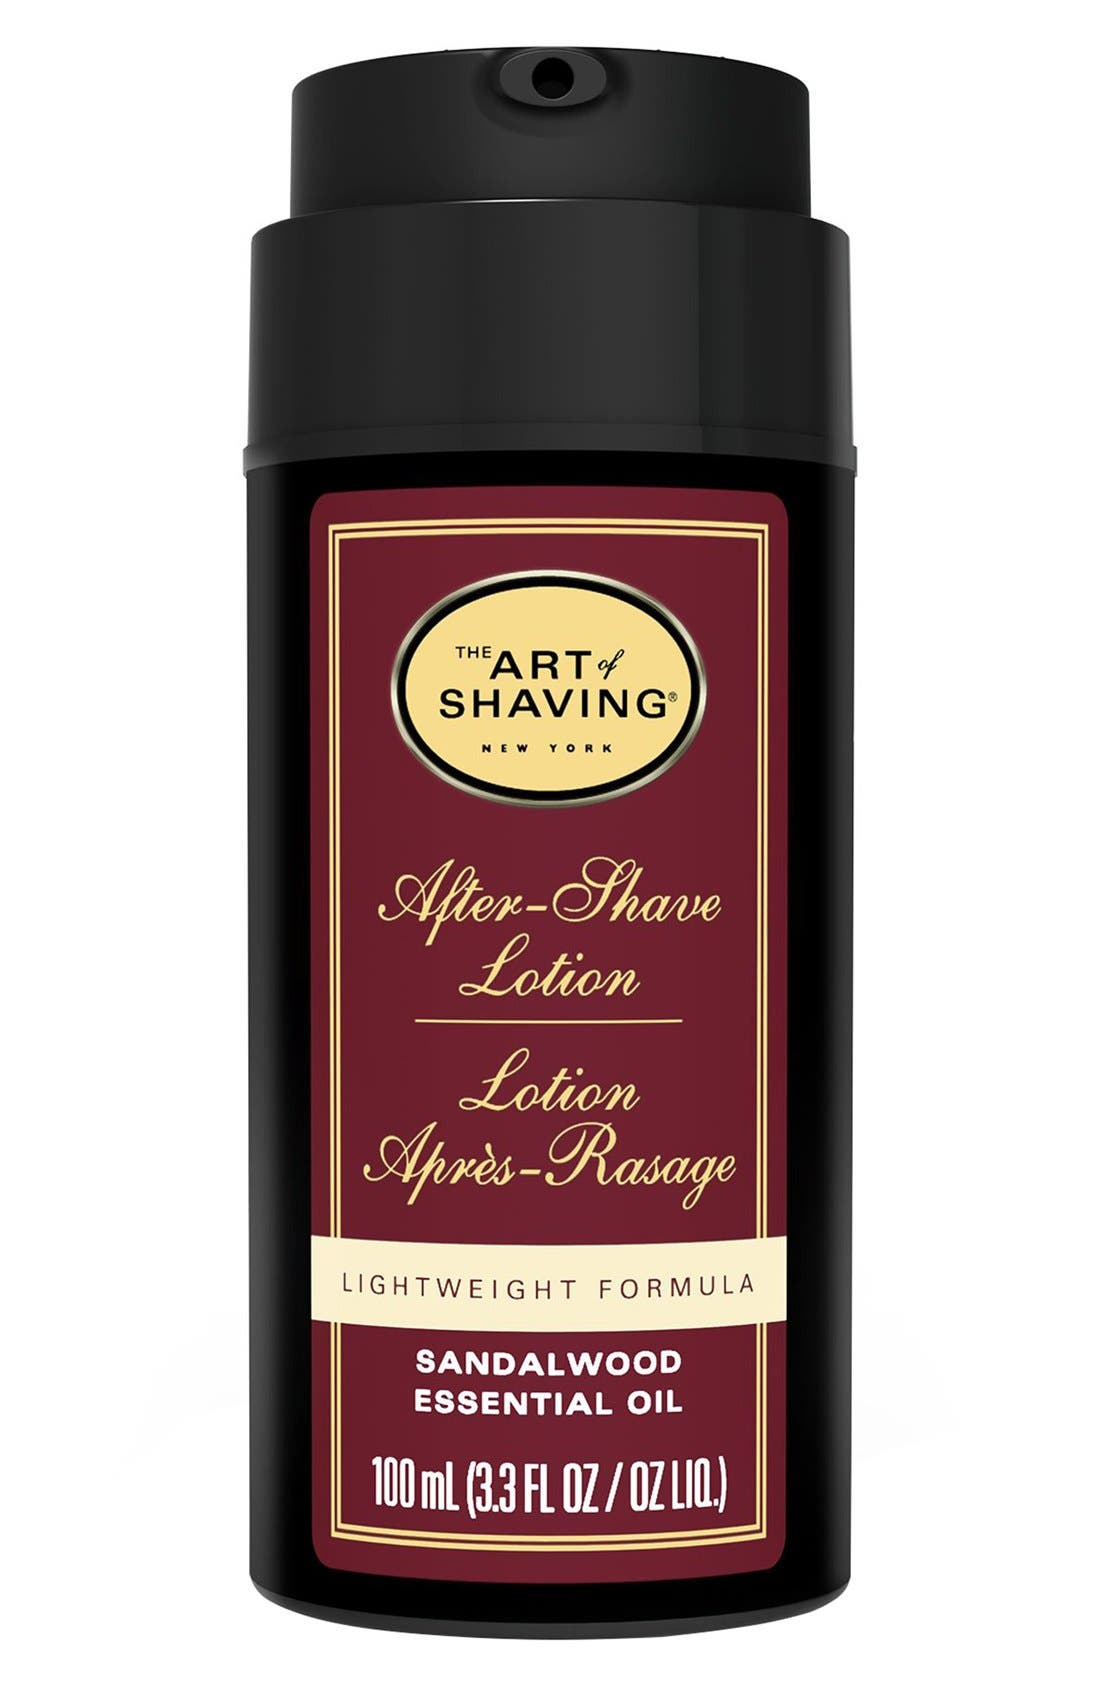 The Art of Shaving® After-Shave Lotion